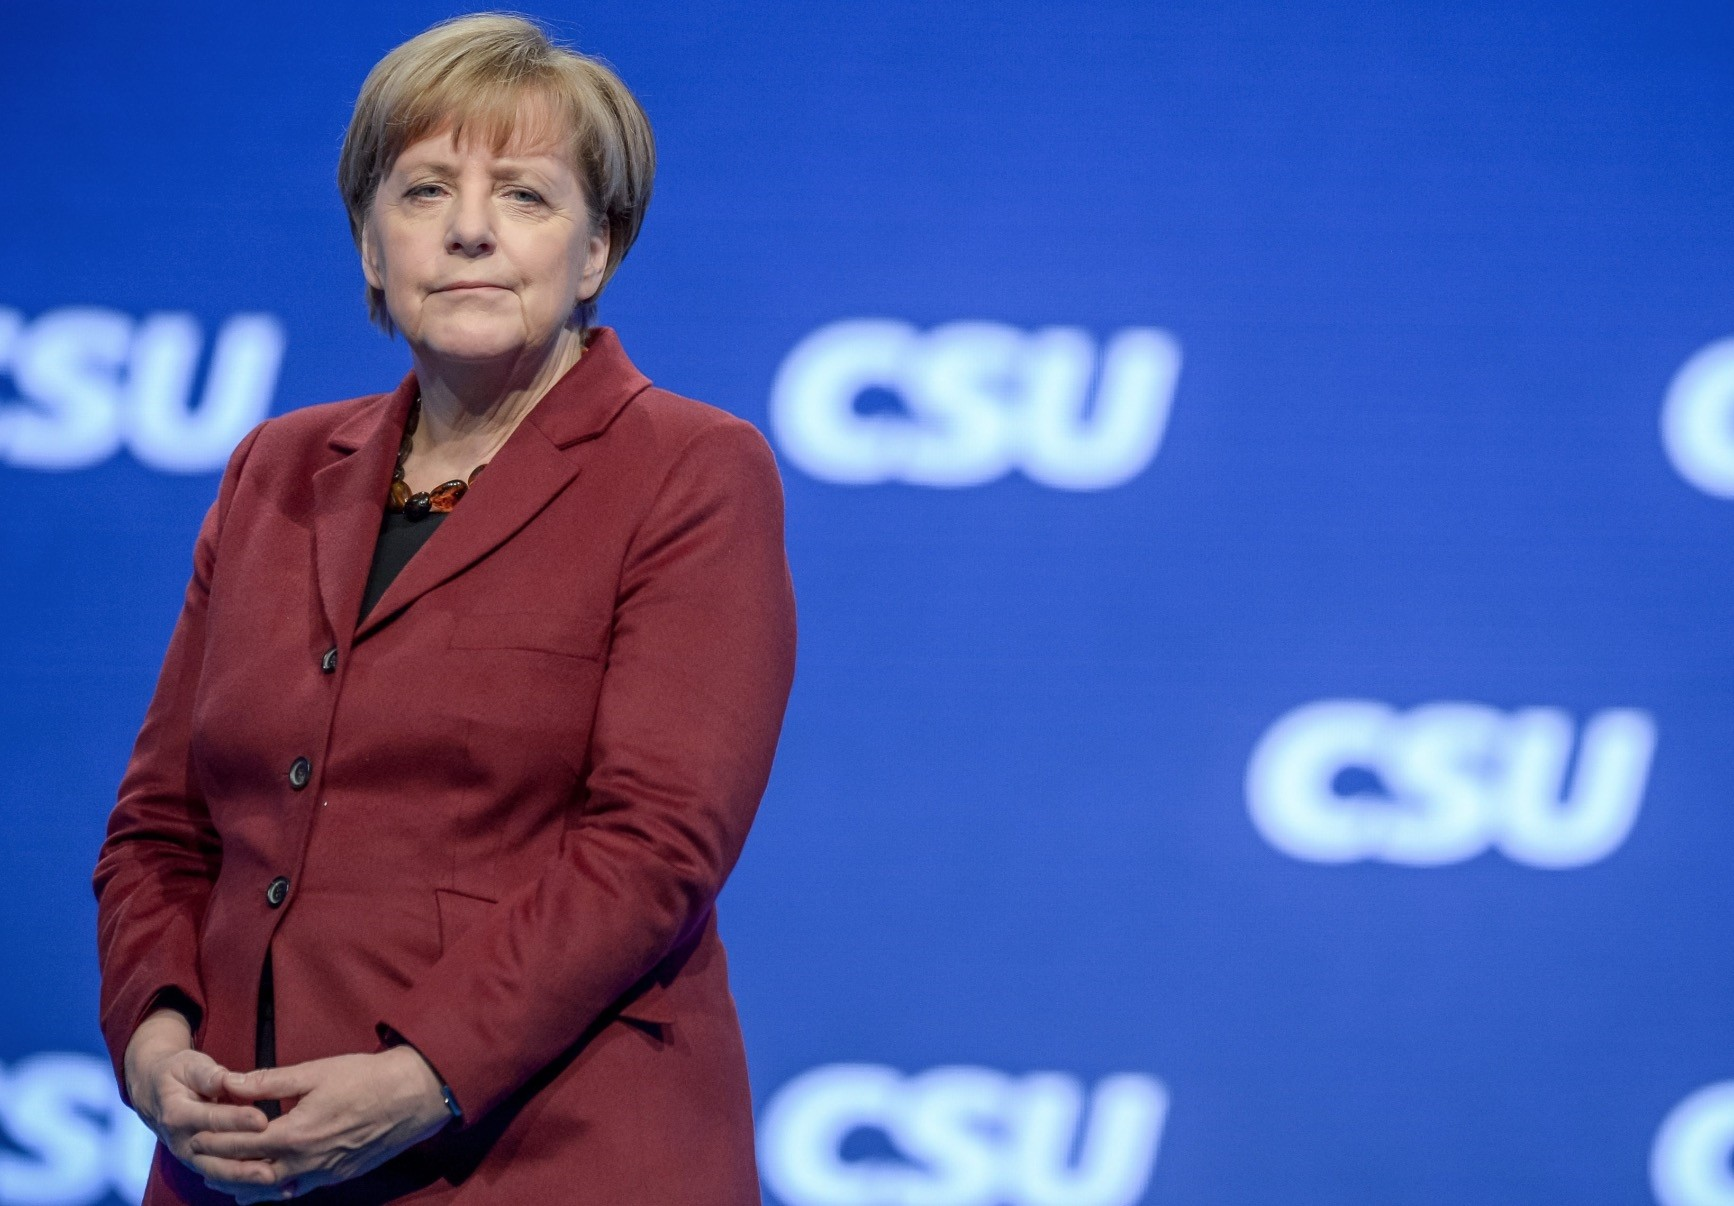 German Chancellor Angela Merkelu2019s fourth government has come close to collapsing several times, in arguments over immigration.